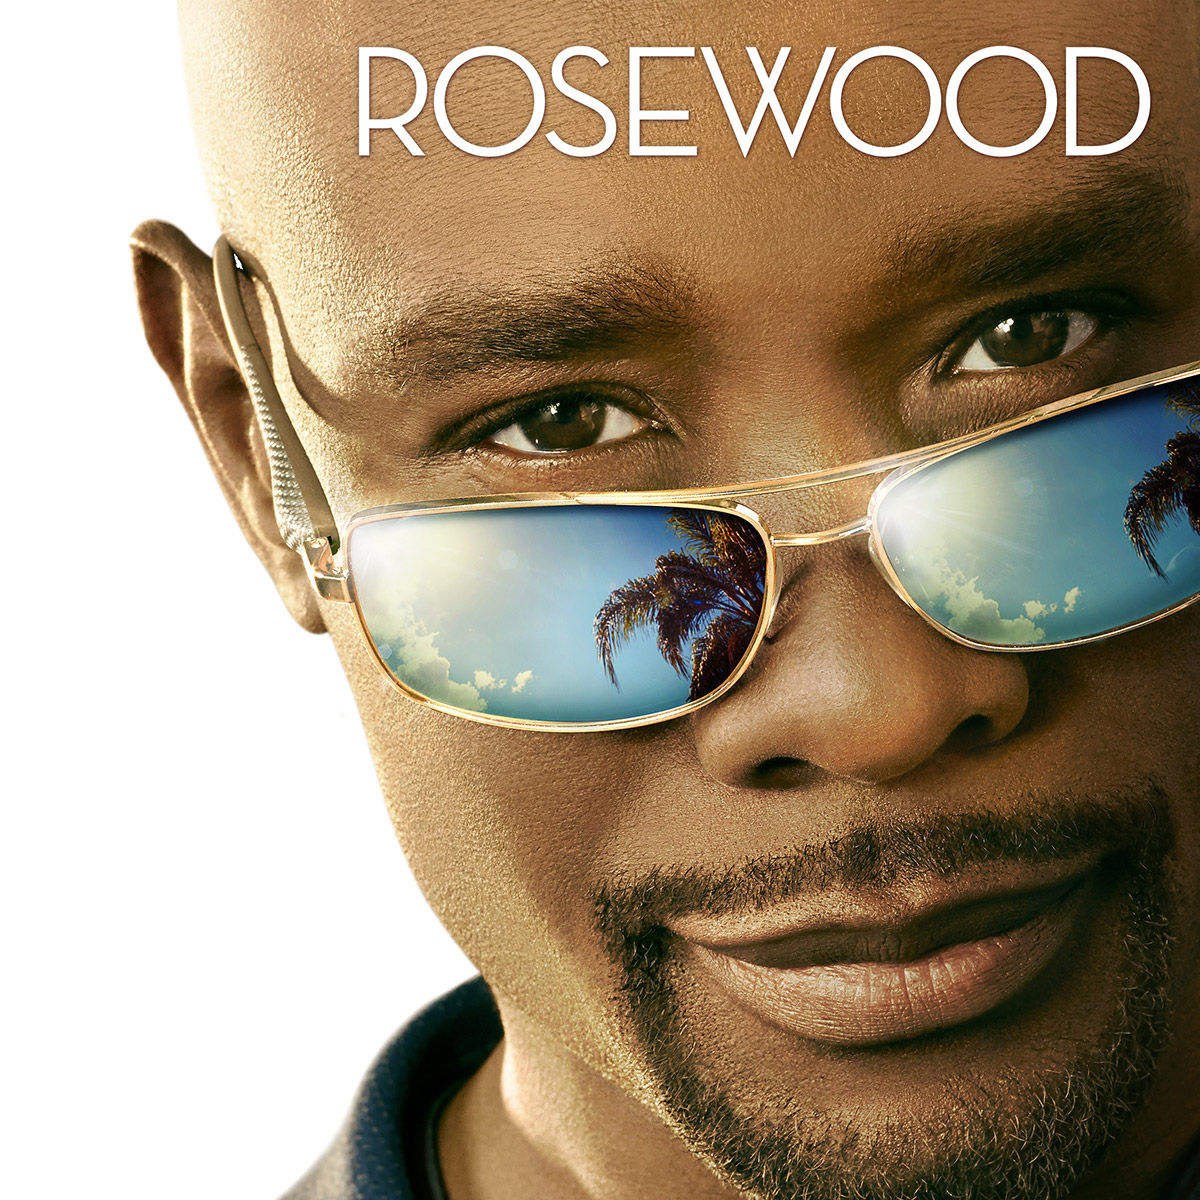 https://i0.wp.com/televisionpromos.com/wp-content/uploads/2015/05/Rosewood-FOX-Artwork-key-art-Morris-Chestnut.jpg